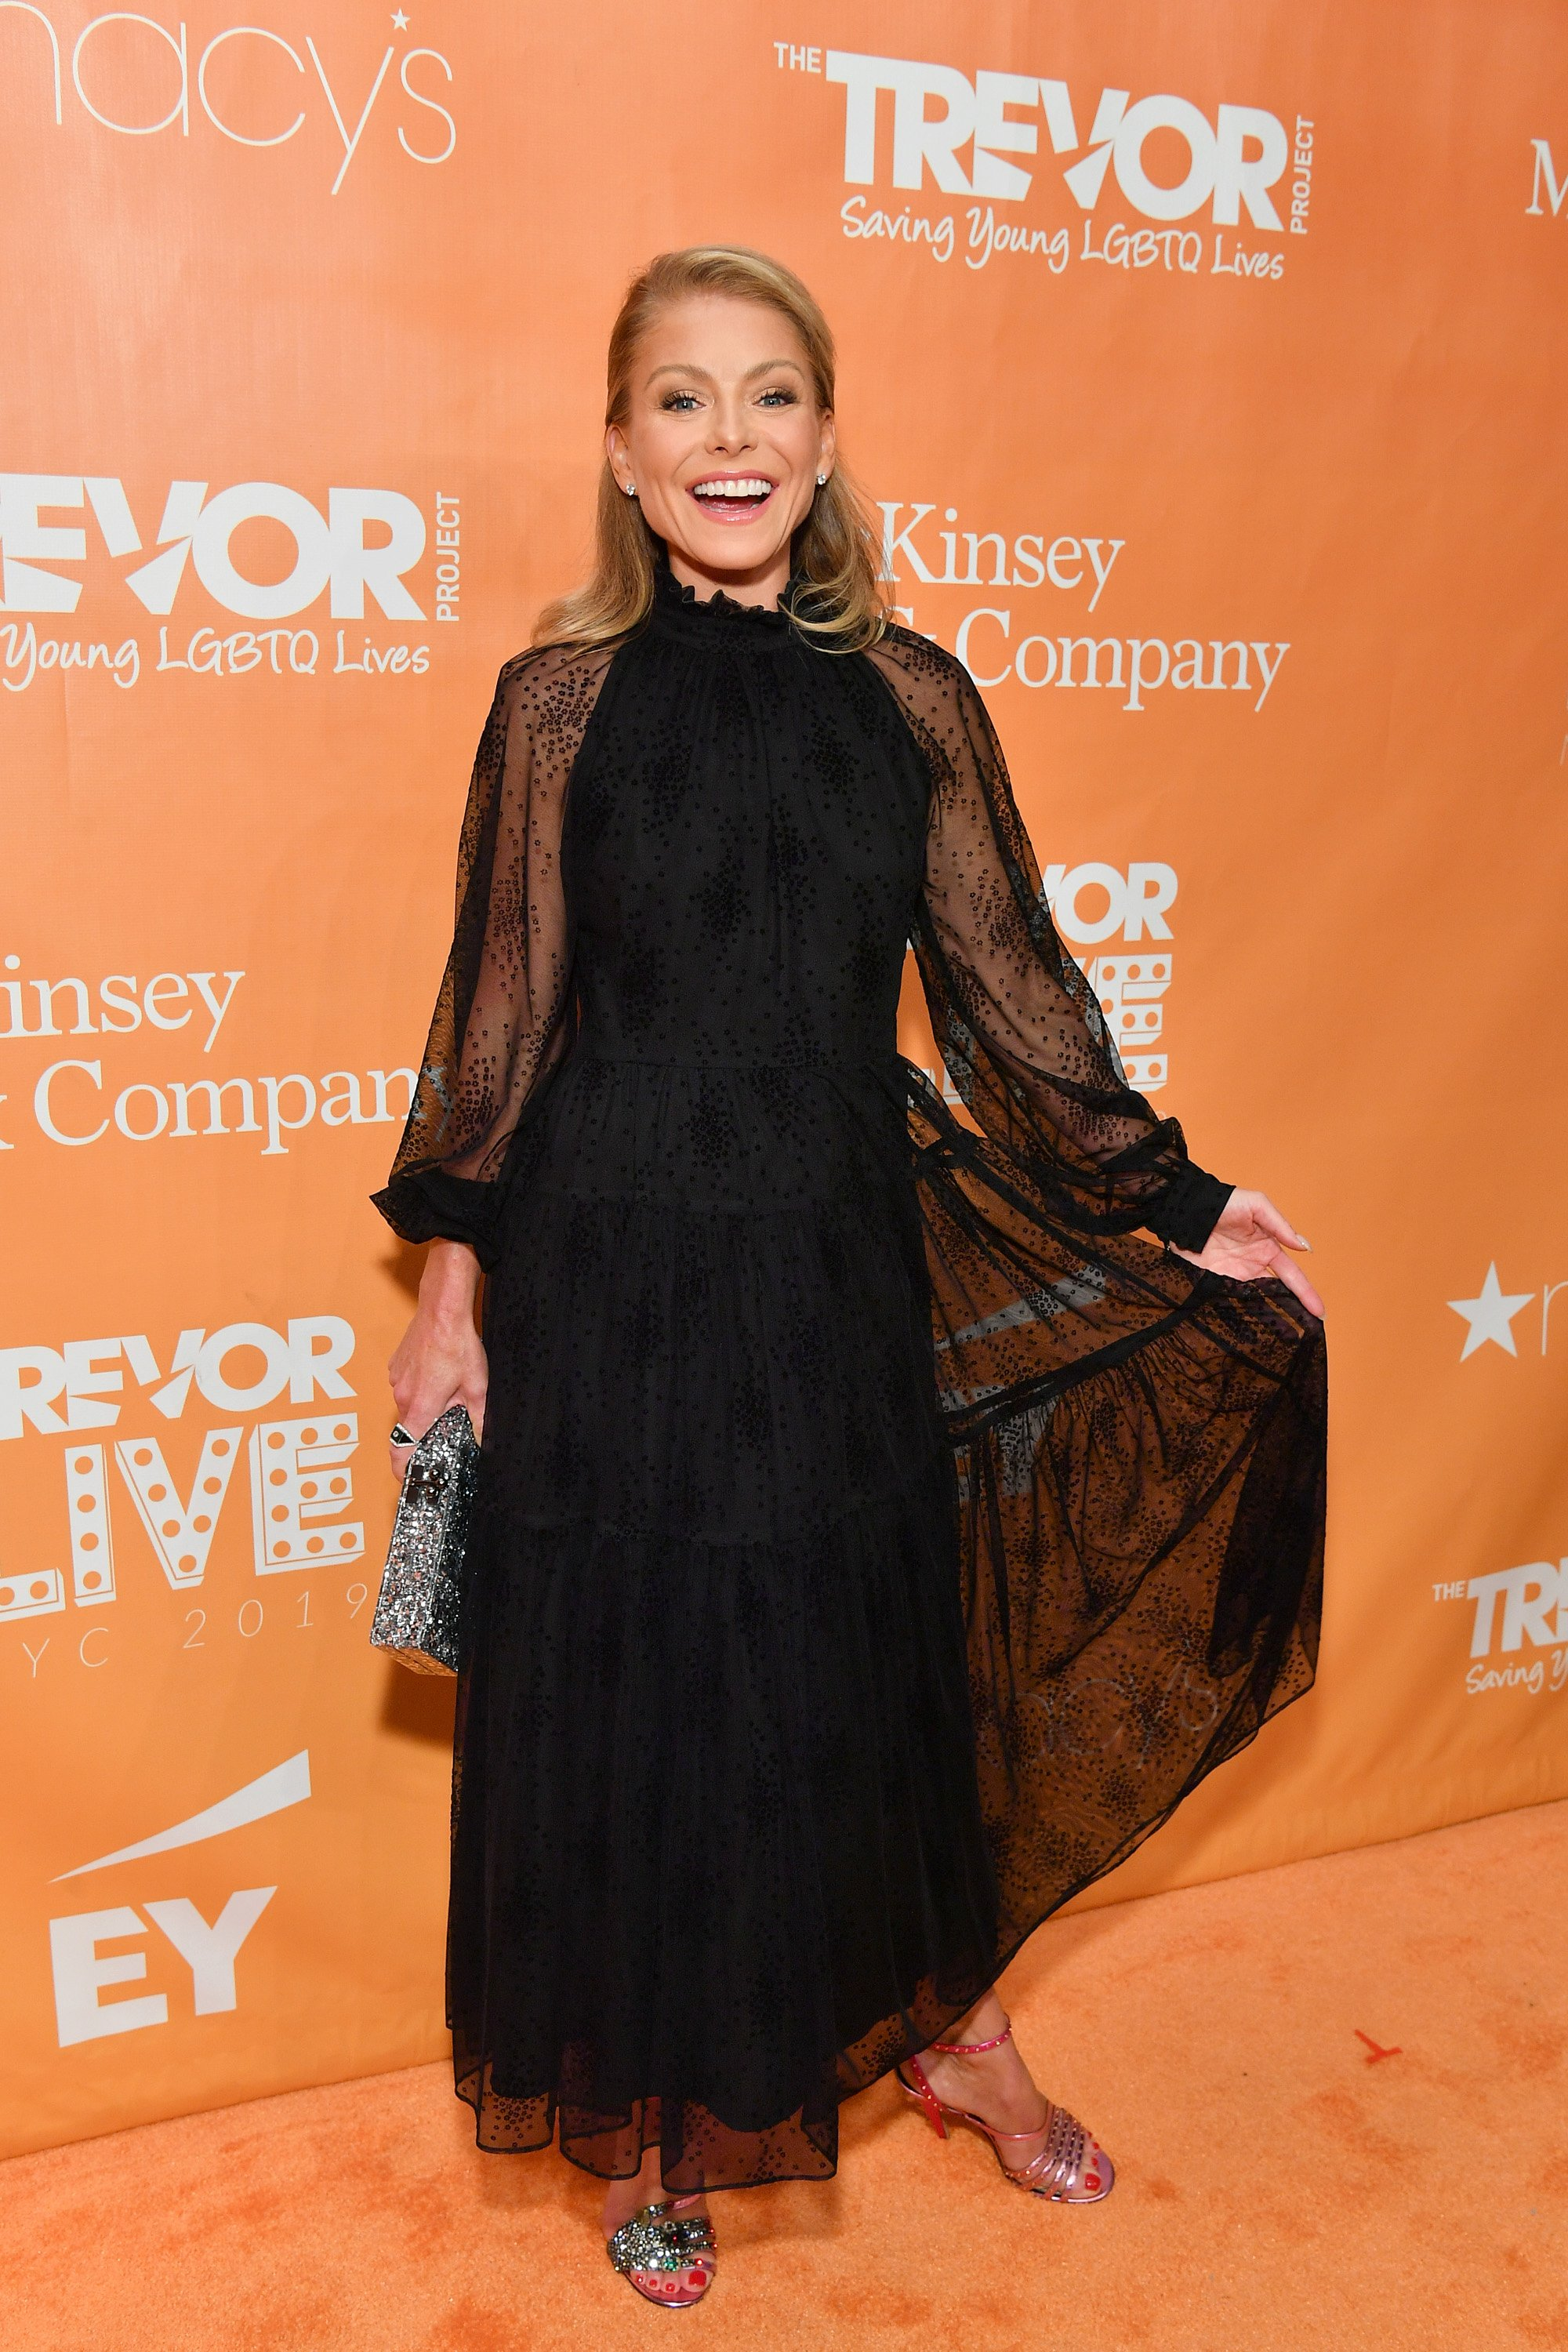 Kelly Ripa attends the 2019 TrevorLIVE New York Gala on June 17, 2019, in New York City. | Source: Getty Images.